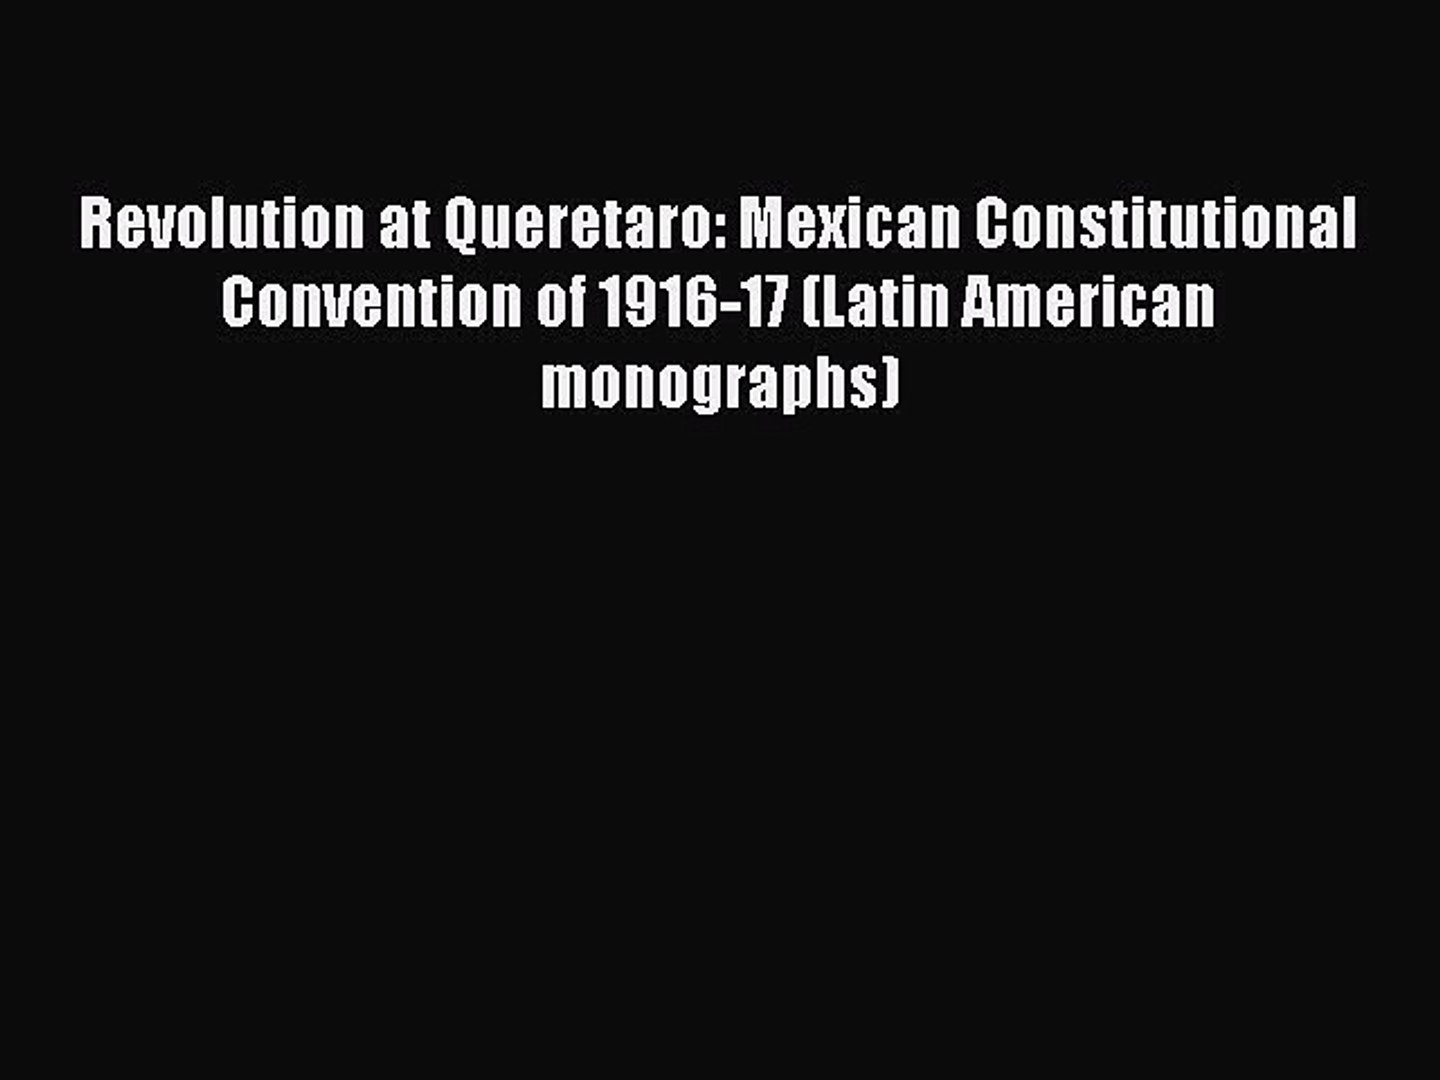 [Read book] Revolution at Queretaro: Mexican Constitutional Convention of 1916-17 (Latin American